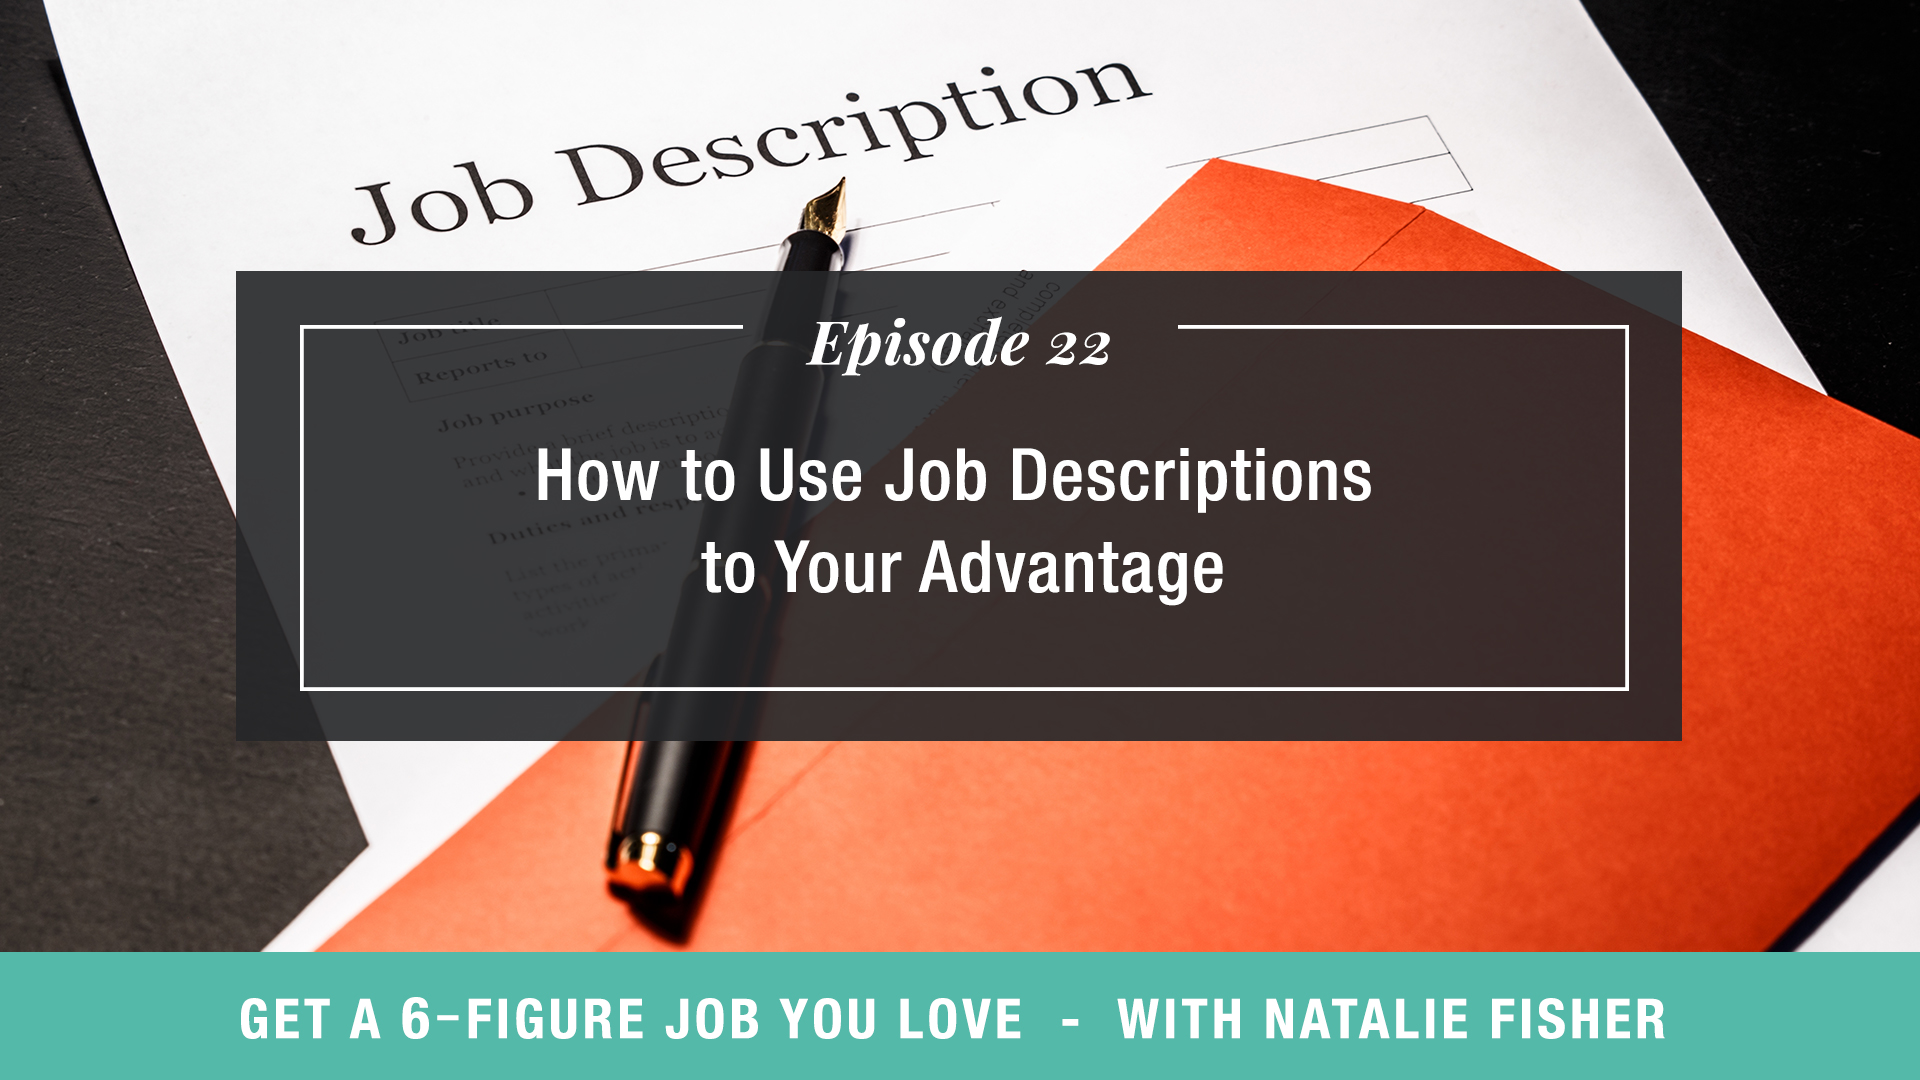 How to Use Job Descriptions to Your Advantage